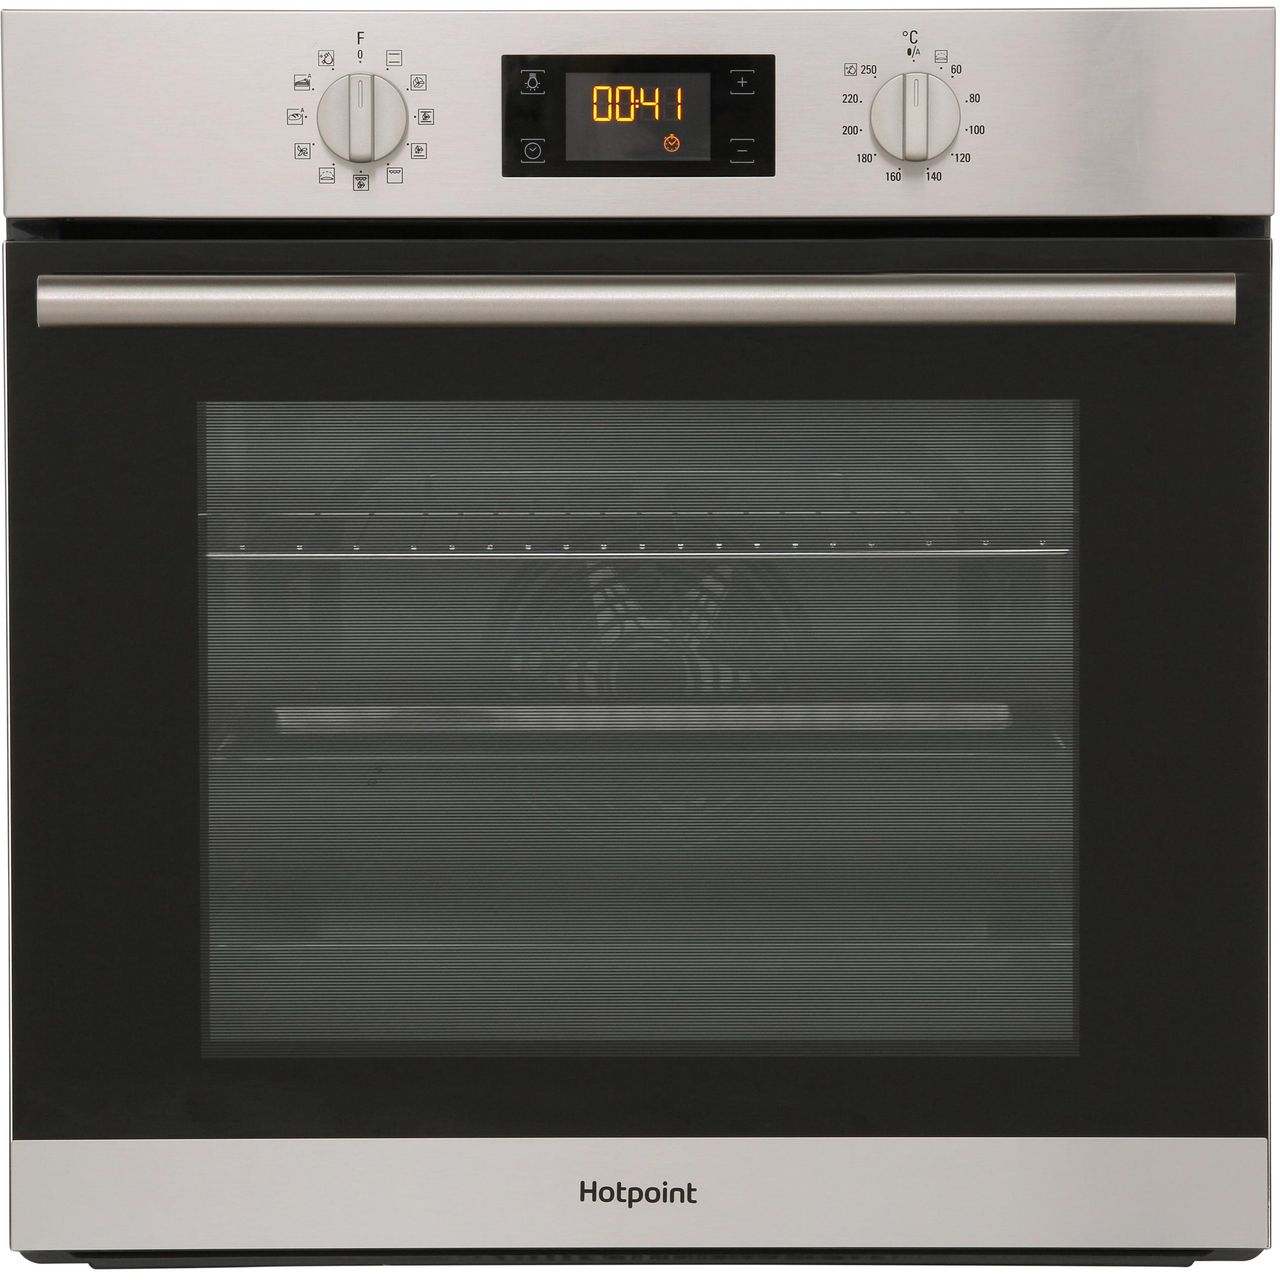 Hotpoint Class 2 Electric Single Oven - Stainless Steel - A+ Rated